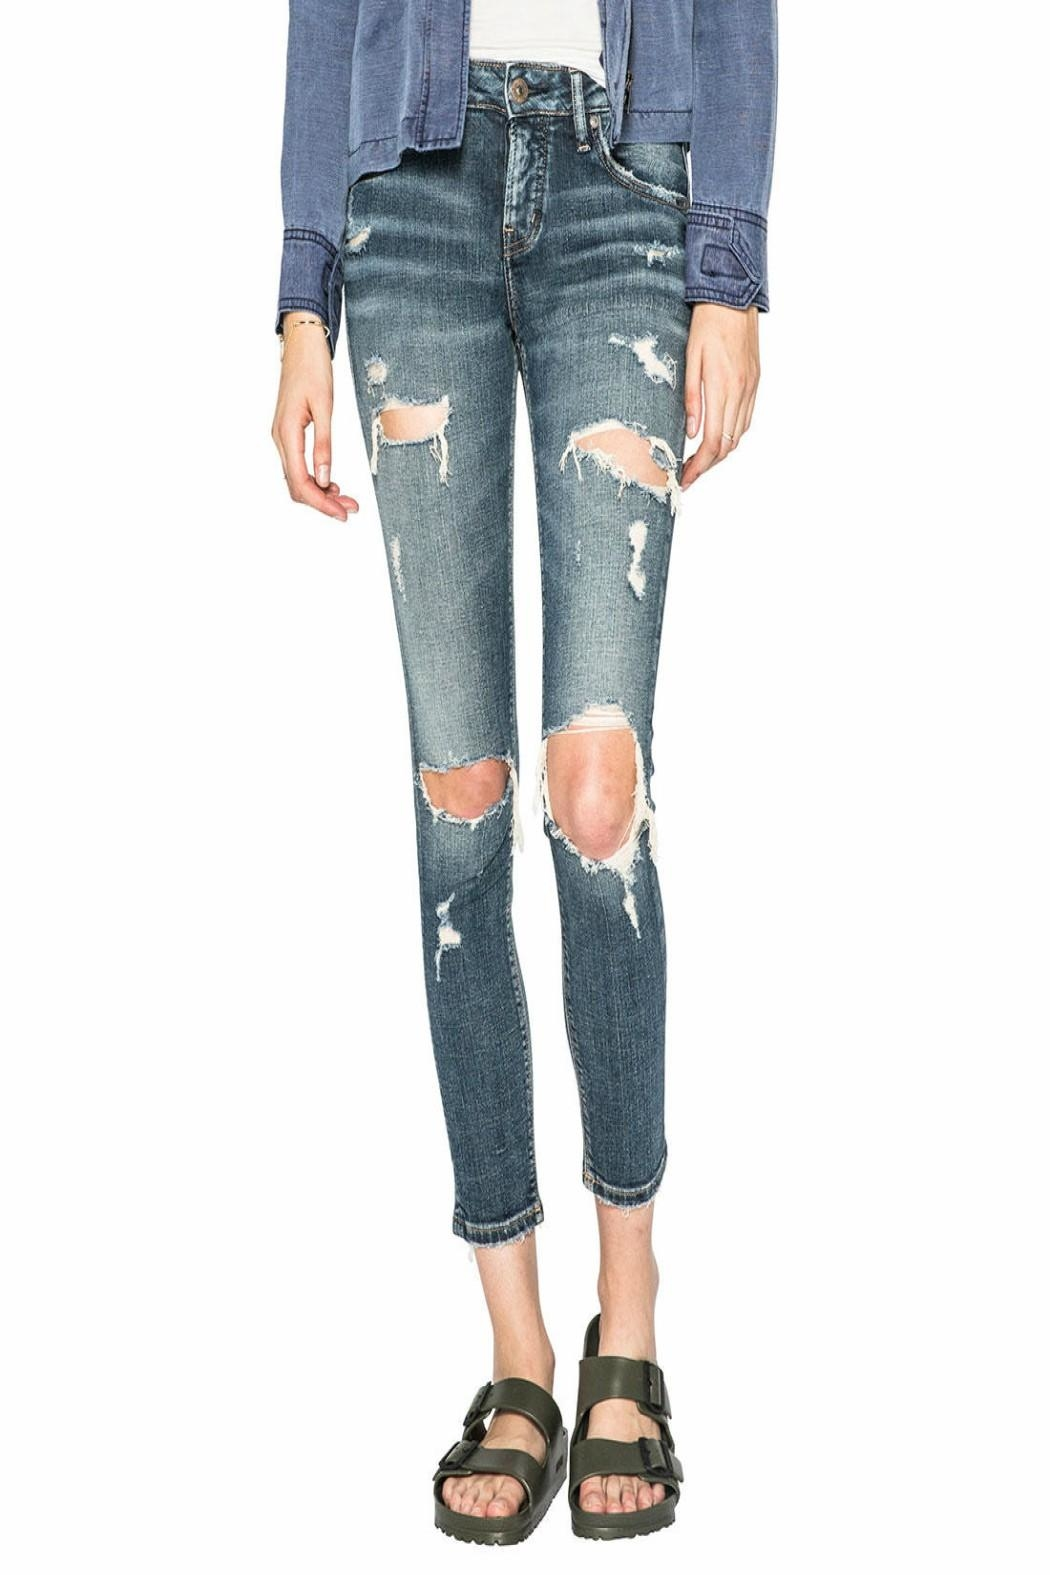 Silver Jeans Co. Girlfriend Mid-Rise Jeans - Main Image